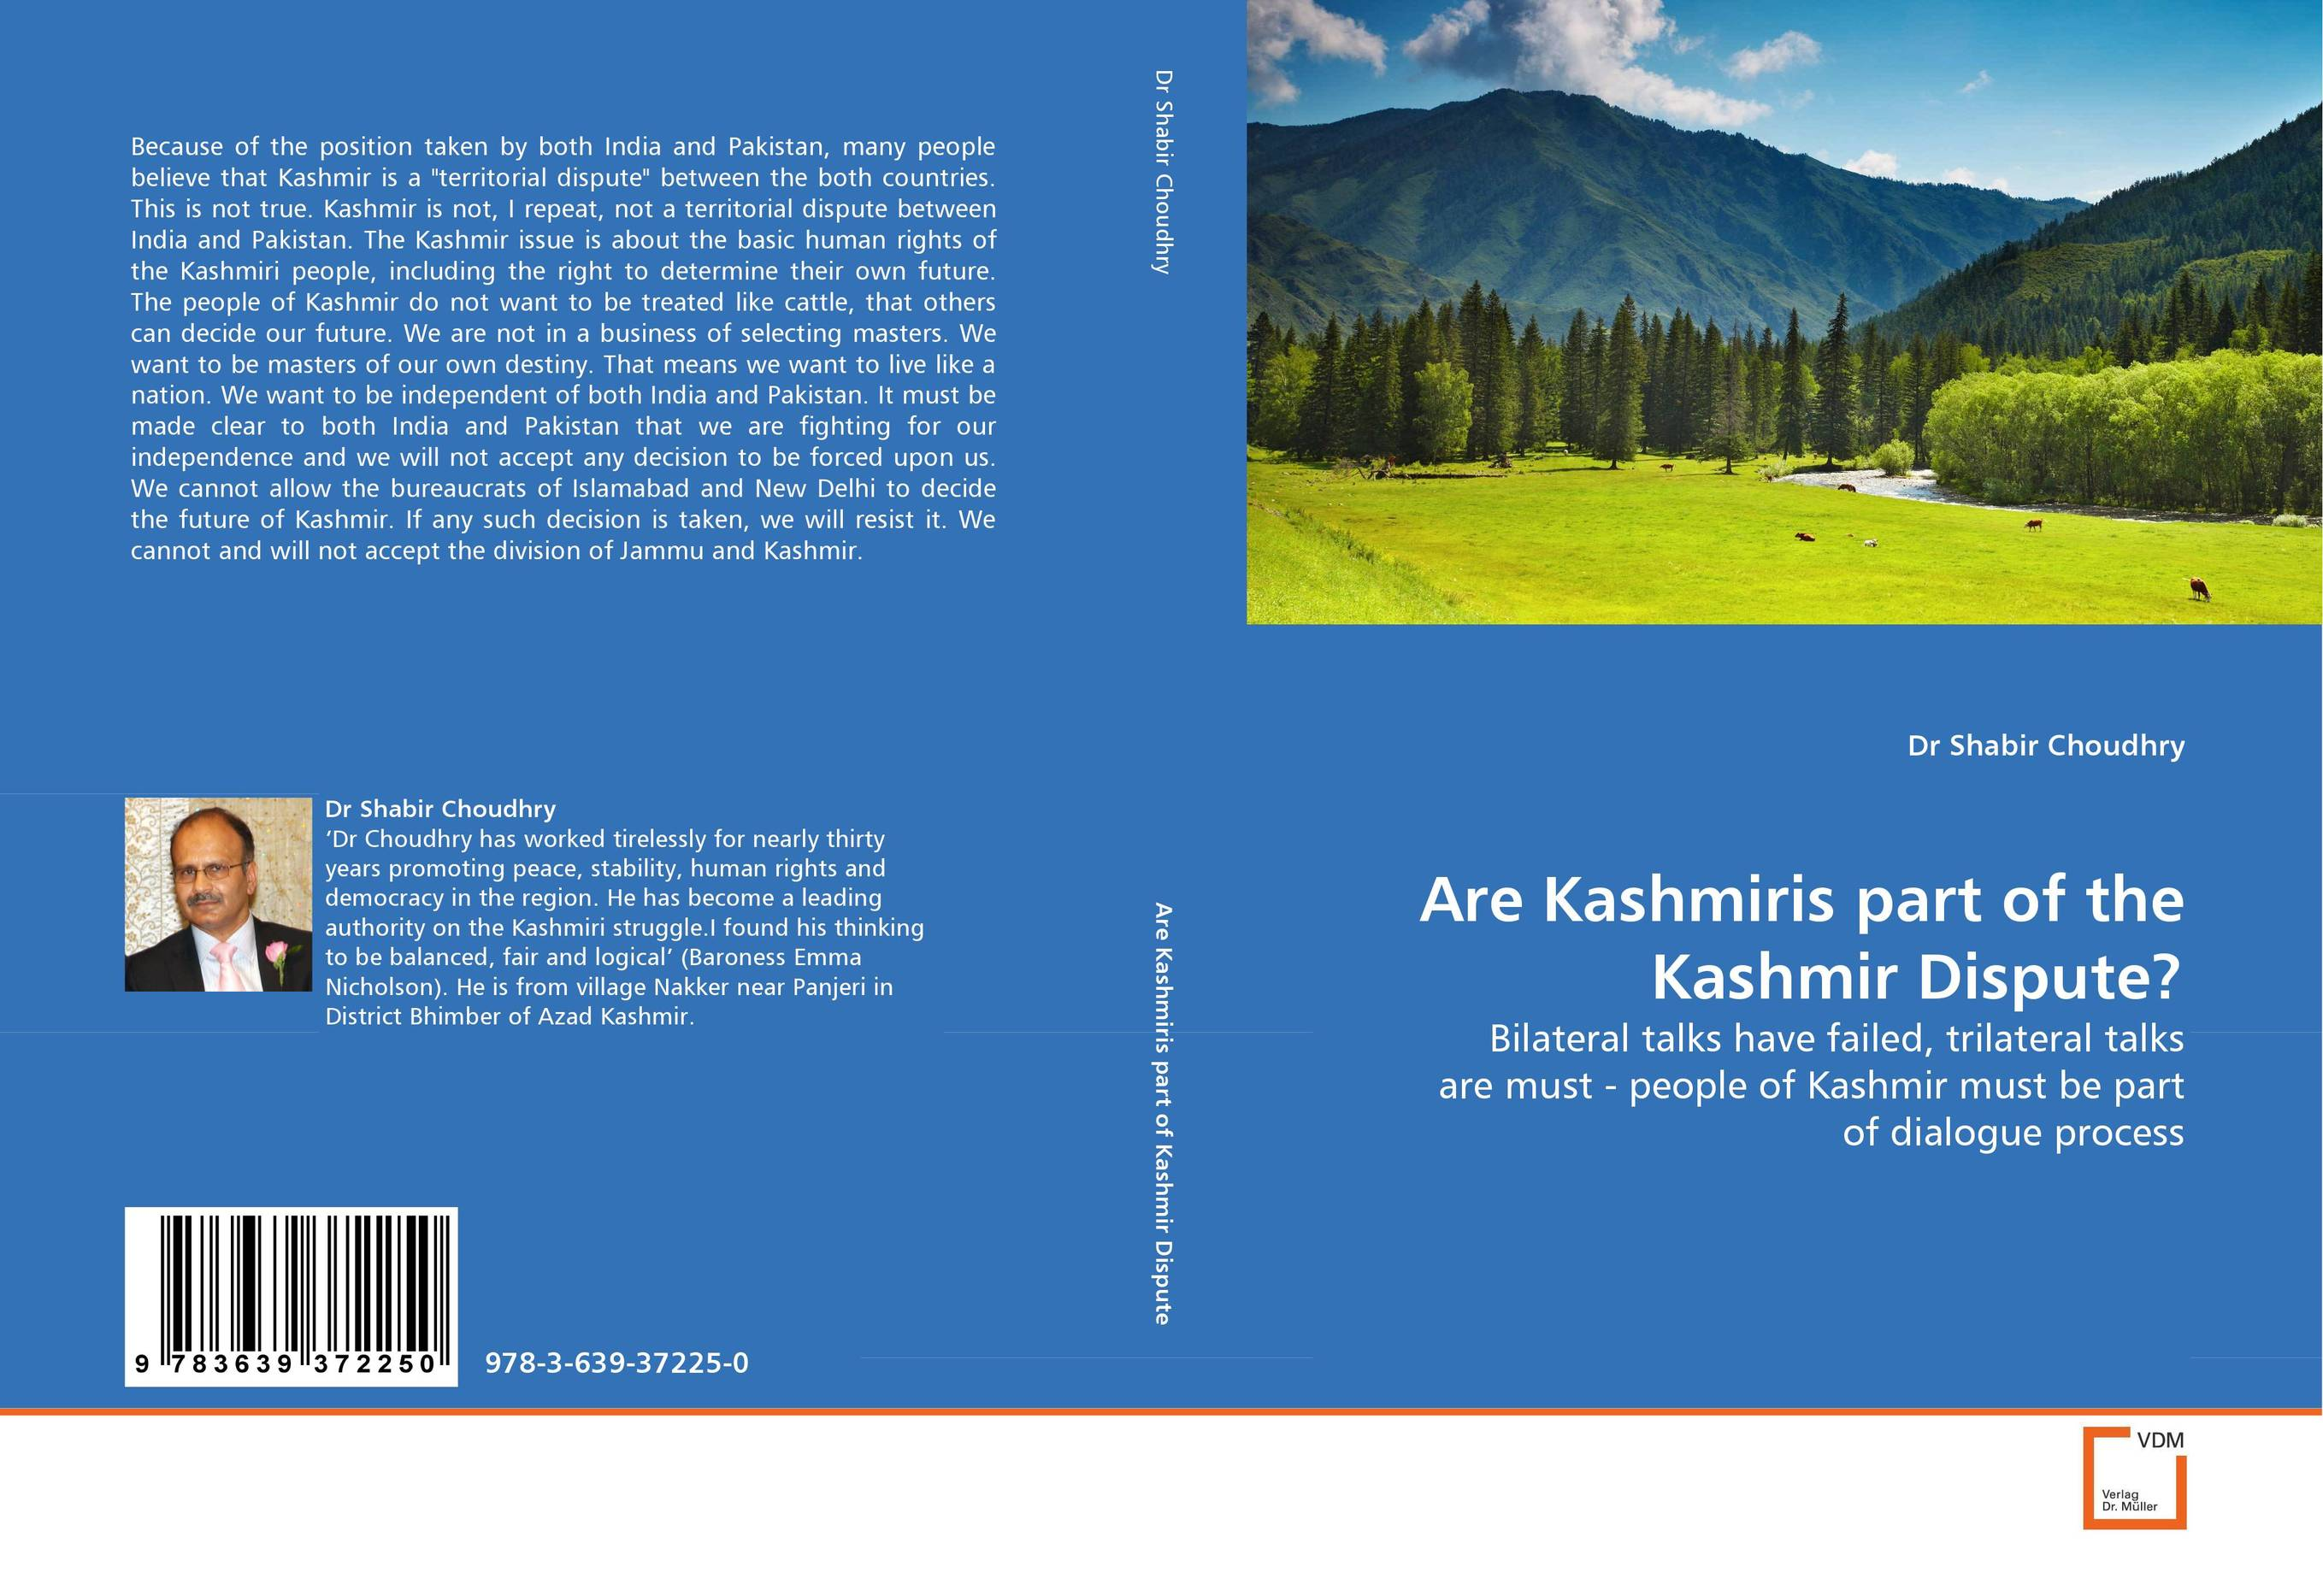 Are Kashmiris part of the Kashmir Dispute? that we do not have free will